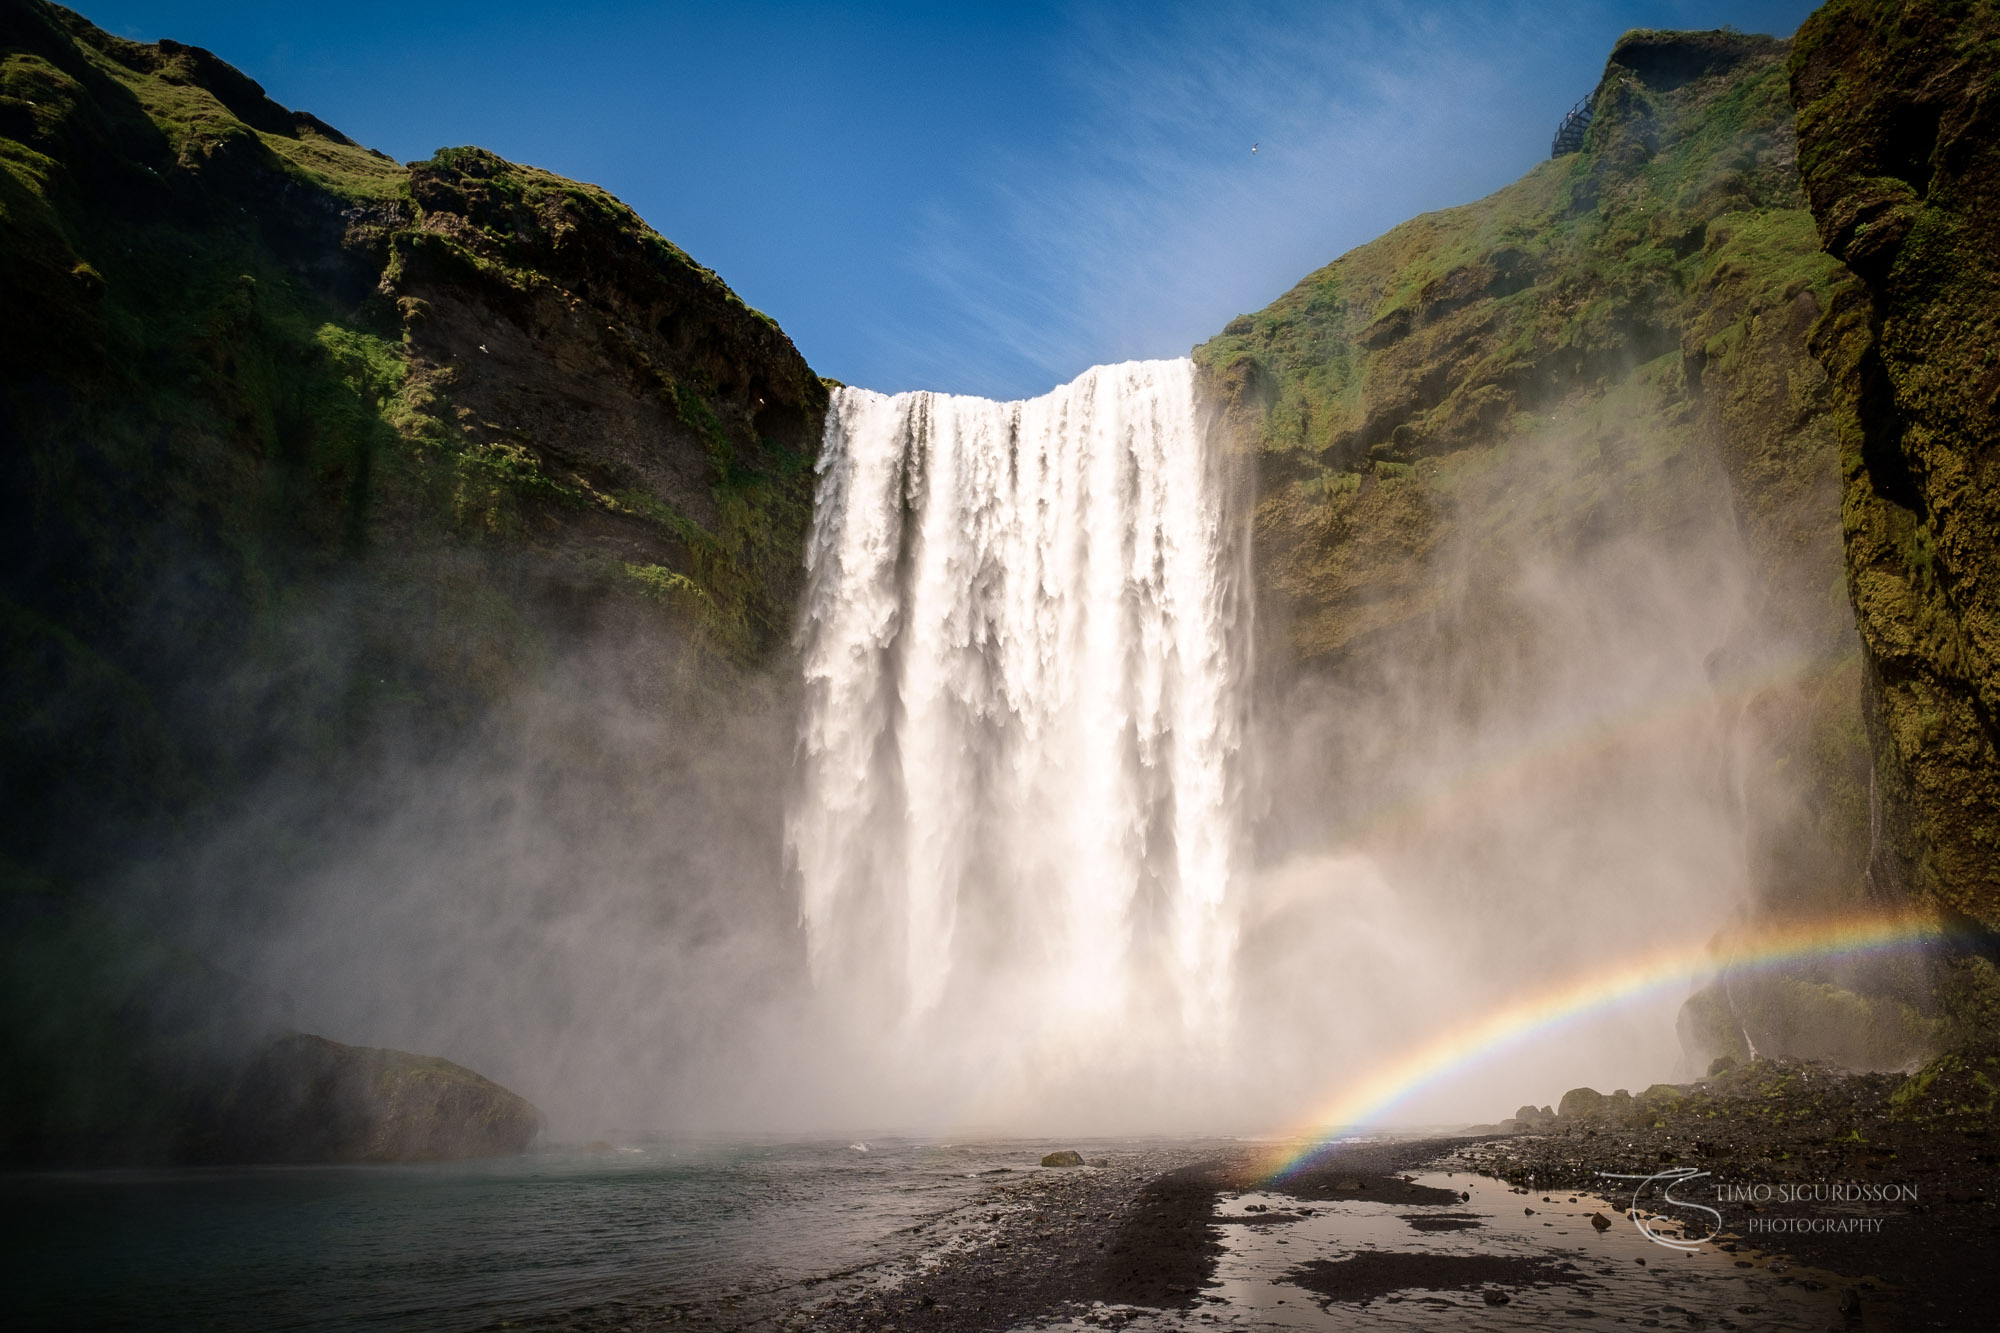 Skógar, Iceland. Skógafoss waterfall with double rainbow.